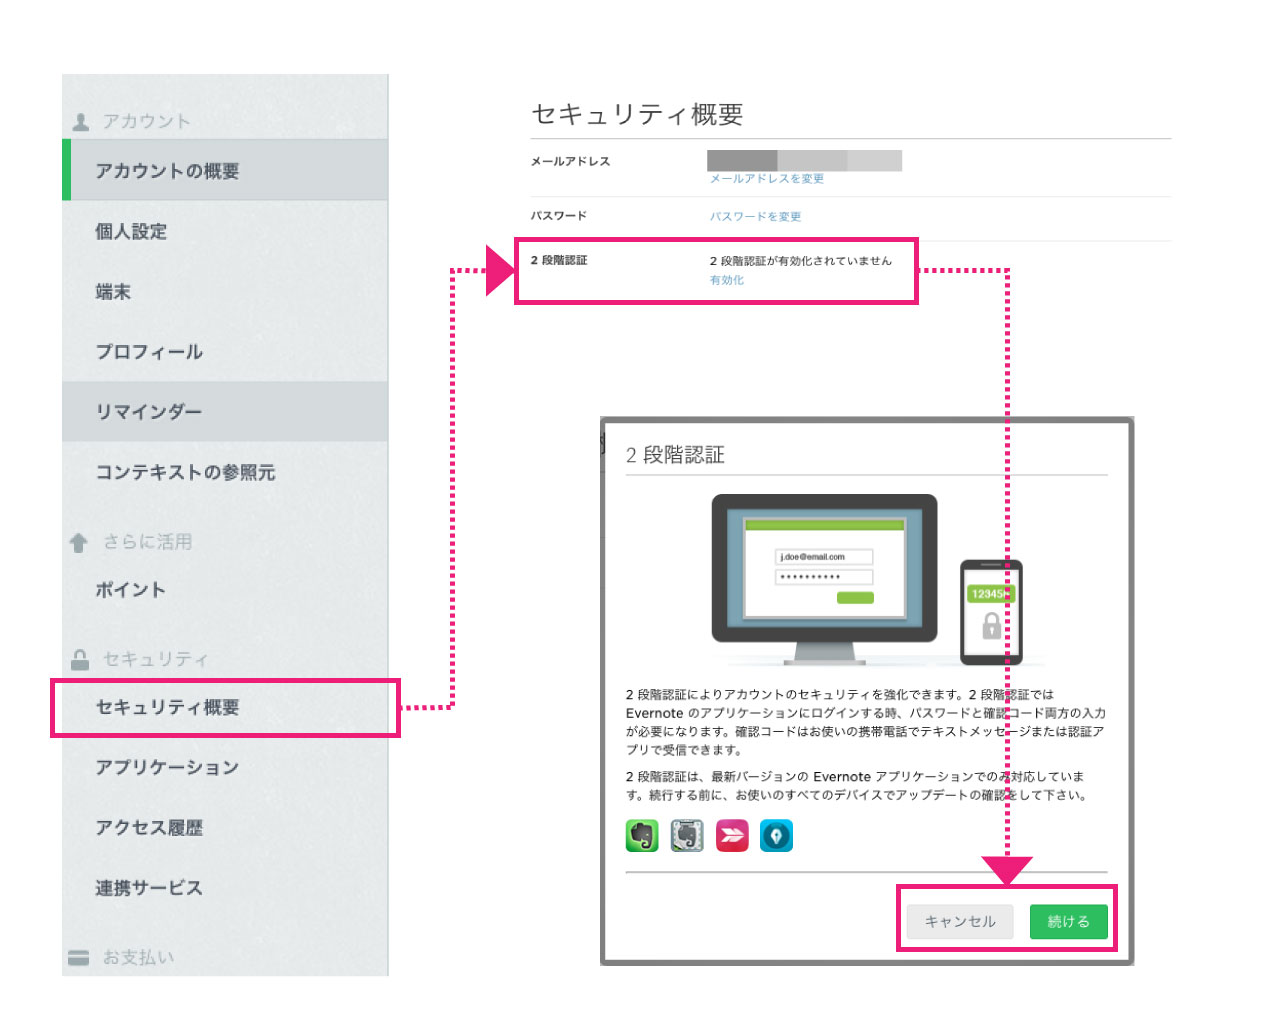 evernote-2step-authentication-2